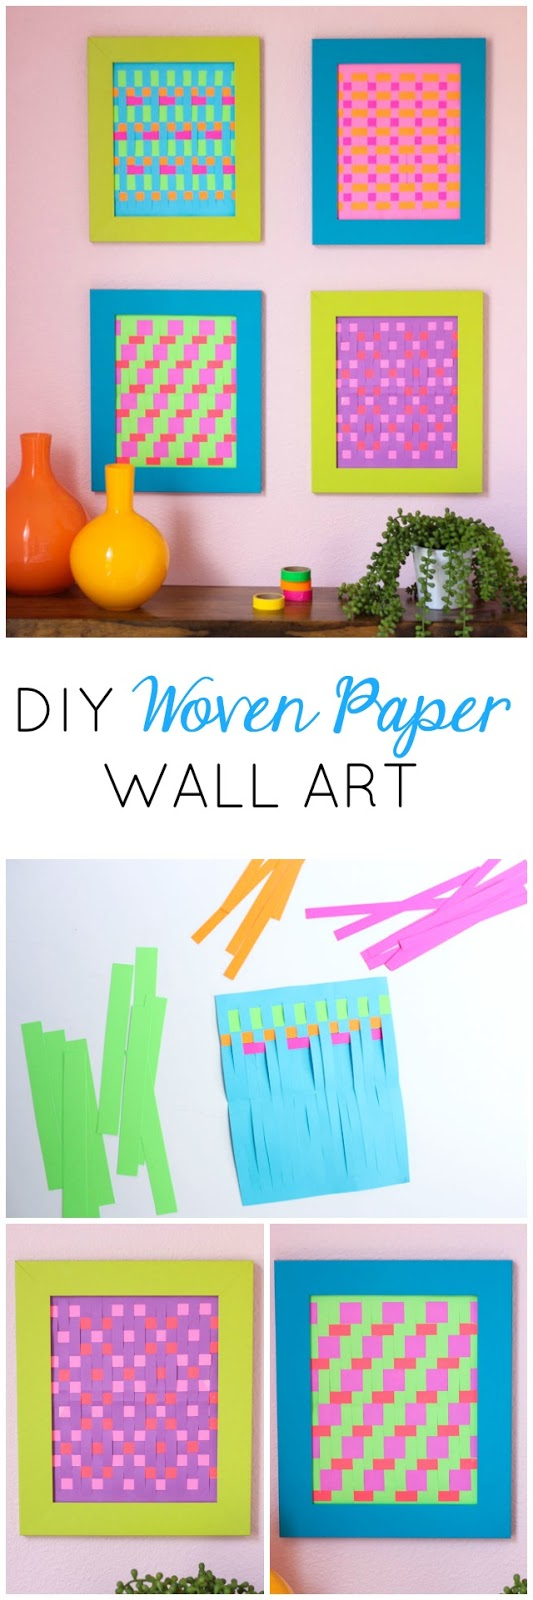 How to make woven paper art - a fun take on the classic paper weaving craft!